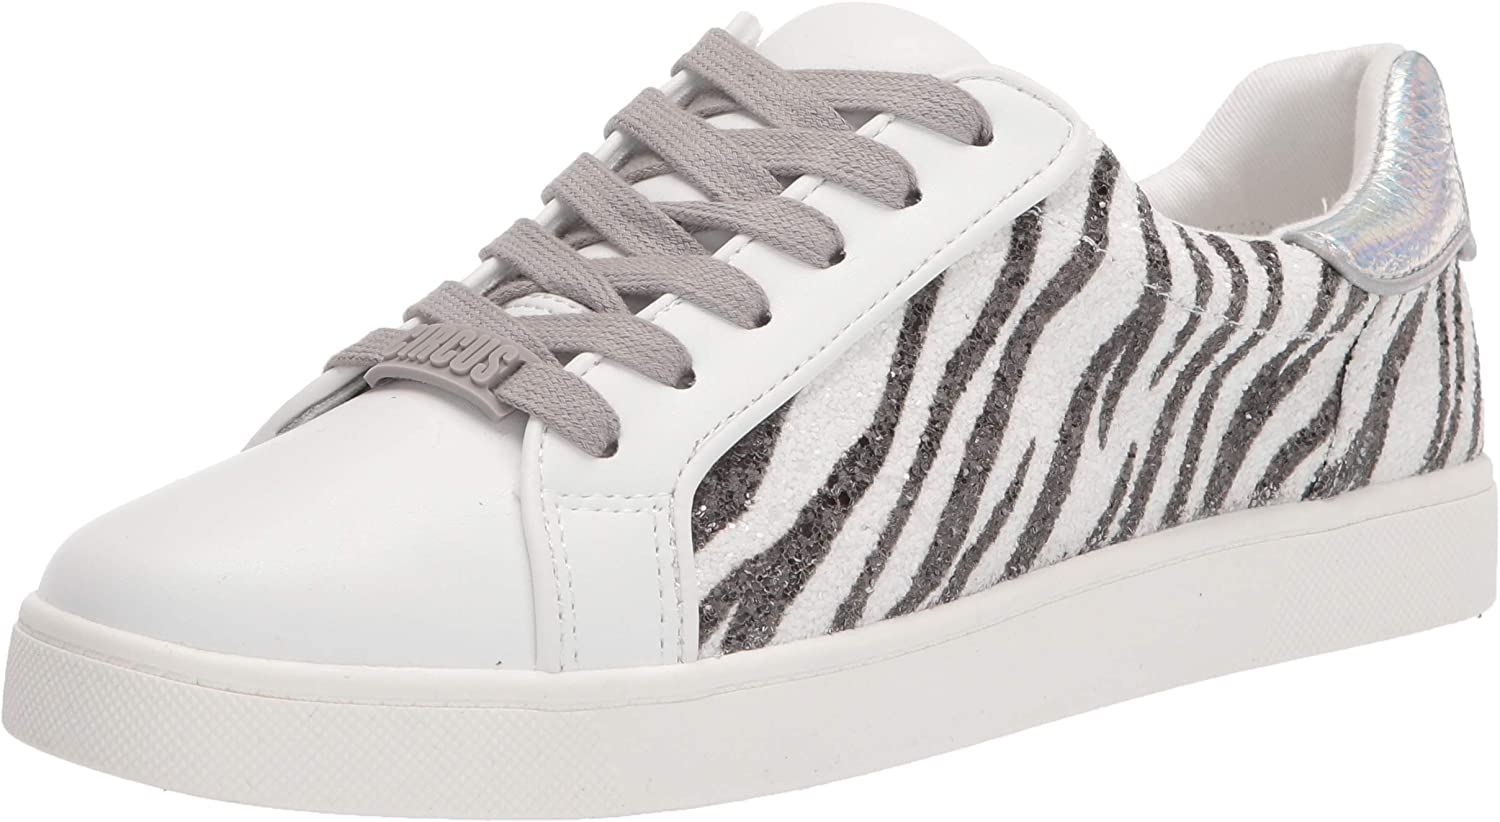 Super beauty product restock quality top! Circus Mail order by Sam Edelman Sneaker Devin Women's